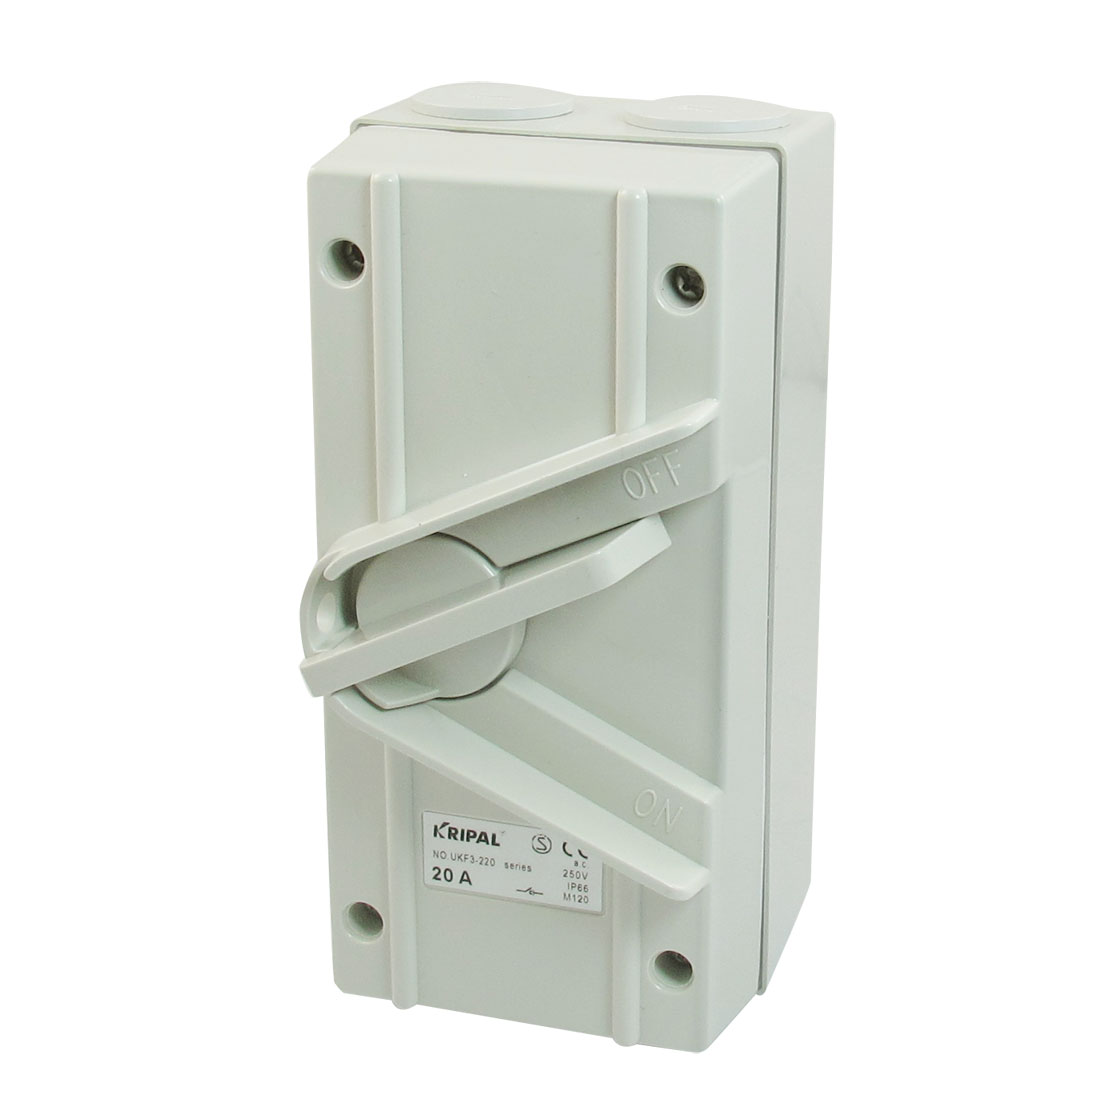 AC 250V 20A IP66 2-Postion OFF/ON DPST UKF3-220 Weatherproof Isolating Switch